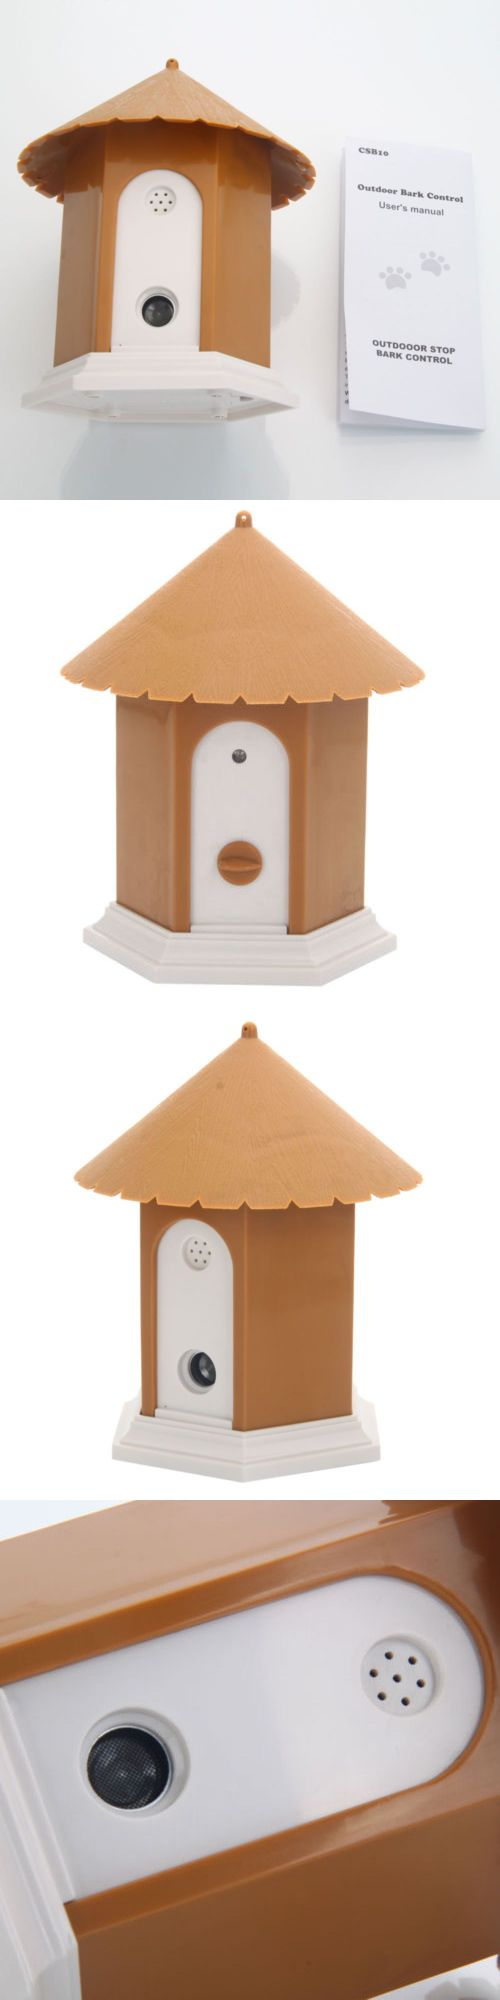 Sonic Trainers 146244: Brown Pet-Csb10 Outdoor Ultrasonic Dog Barking Stop Control System Pet Trainer -> BUY IT NOW ONLY: $30.99 on eBay!